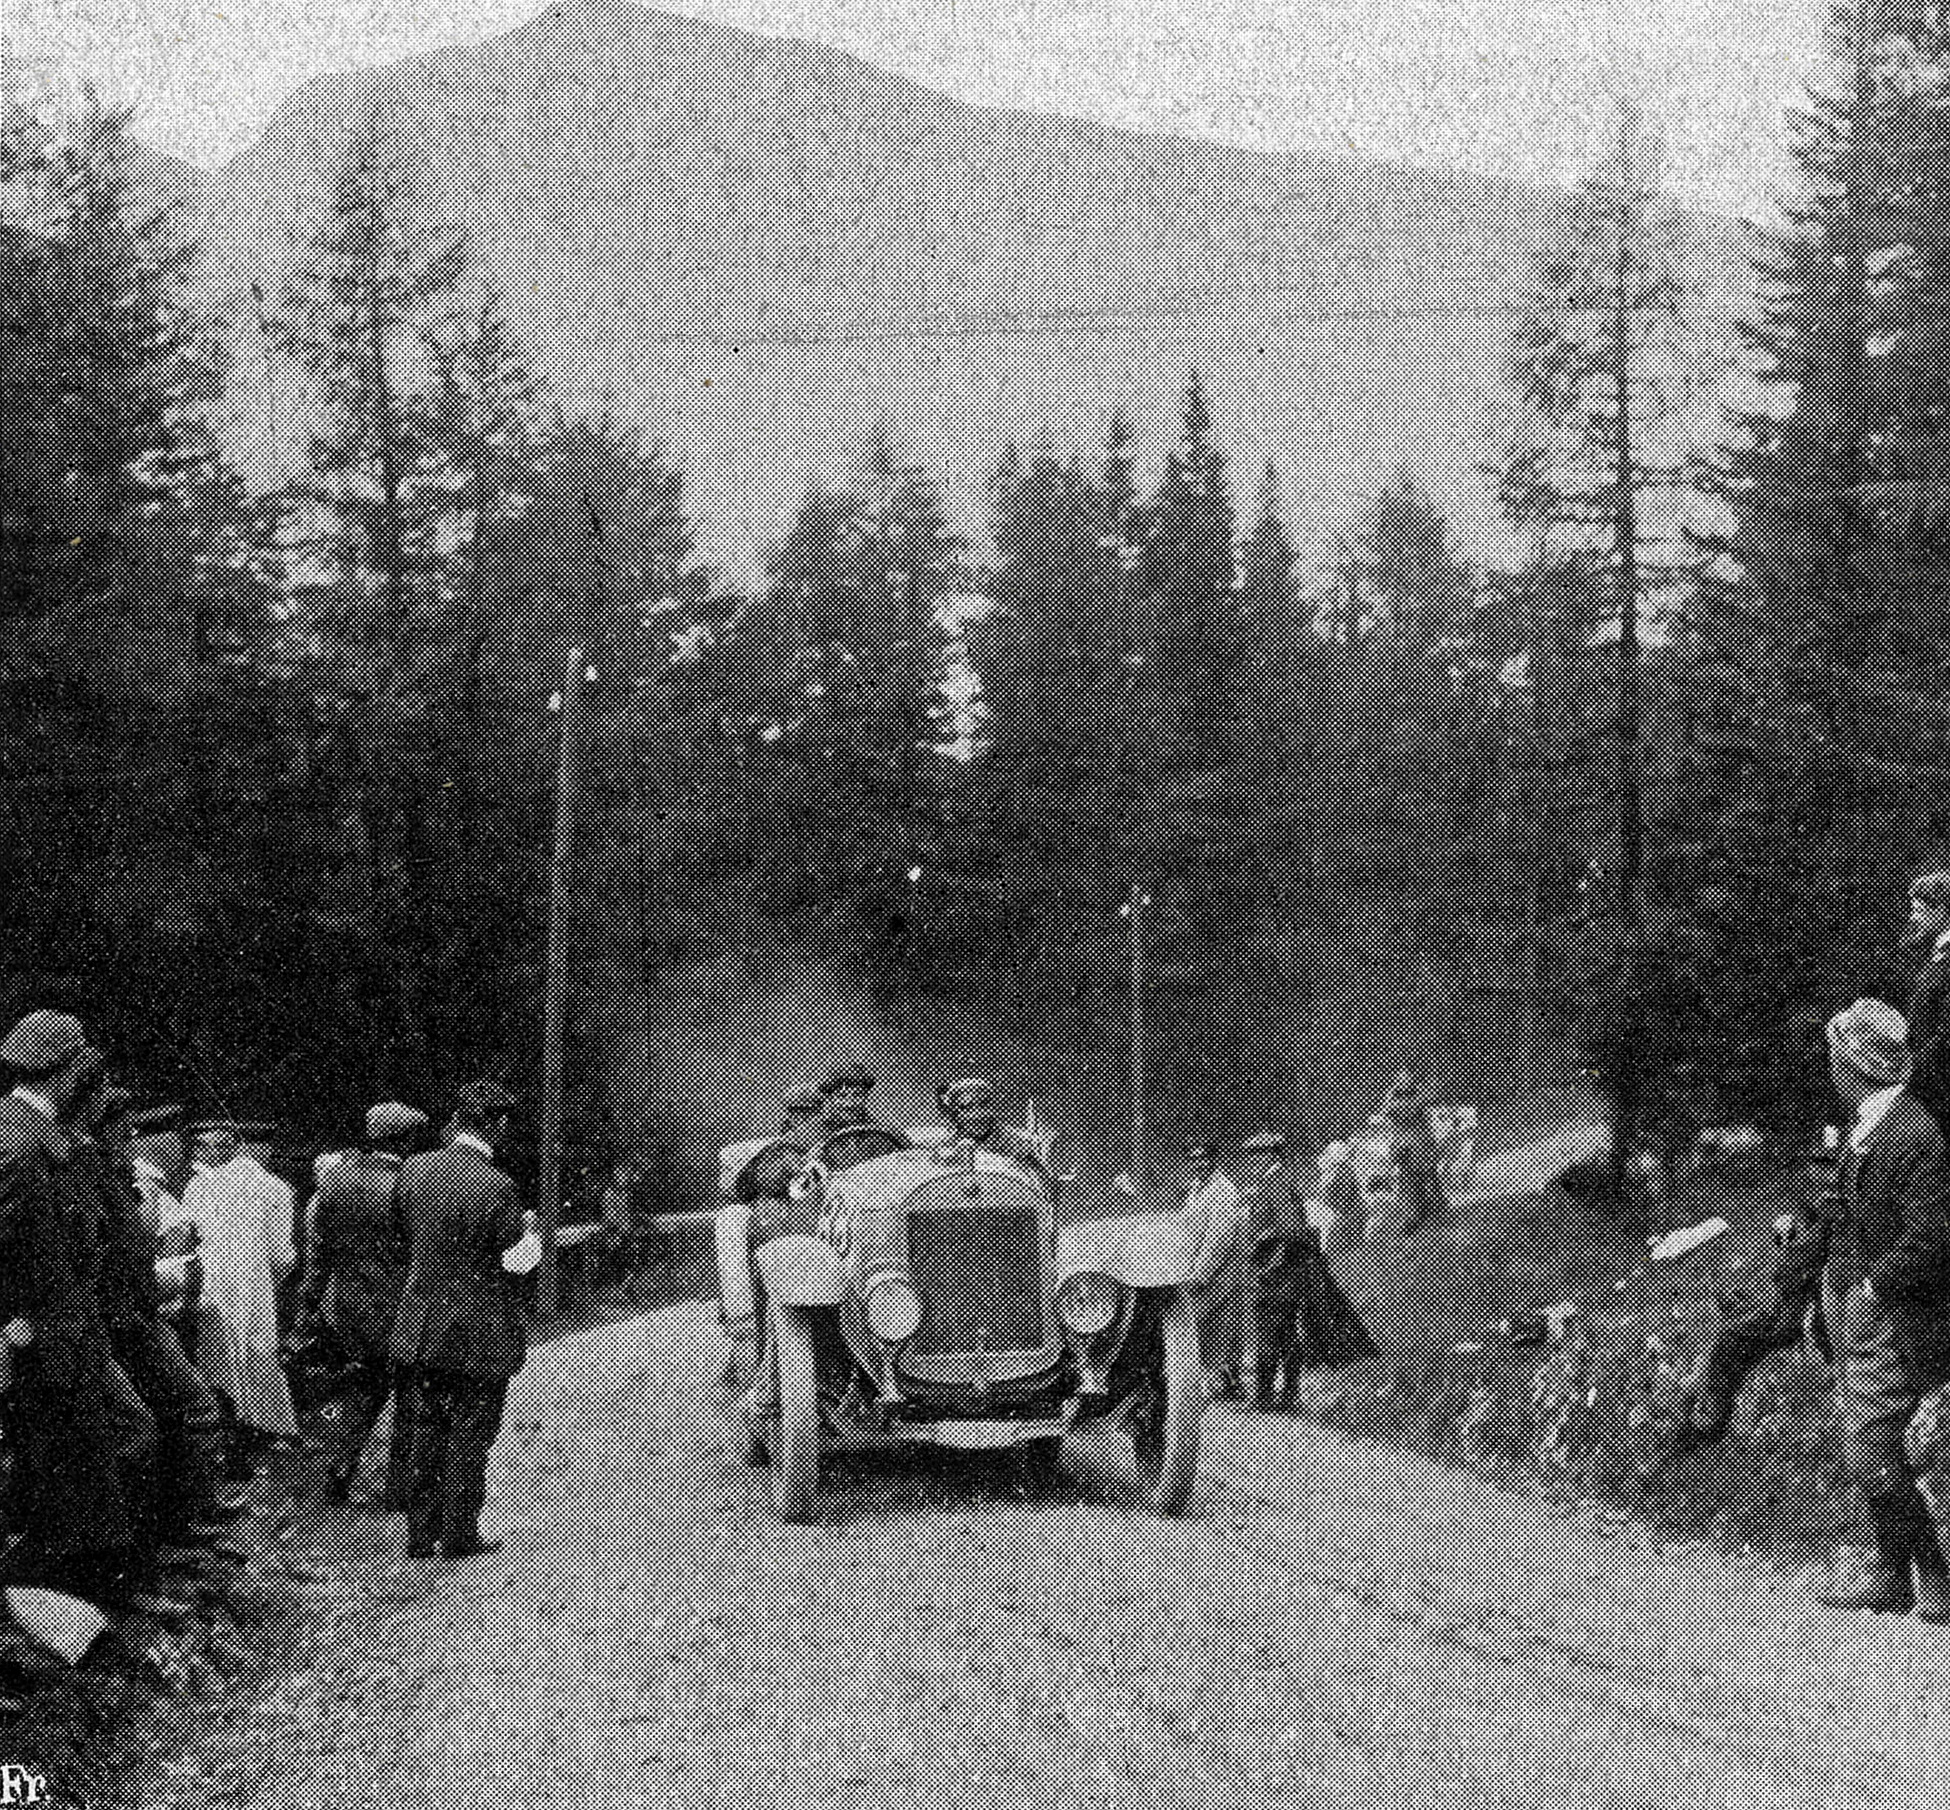 110 years of the Austrian Alpine Rally: Laurin & Klement celebrate success in the most challenging rally of their time - Image 4